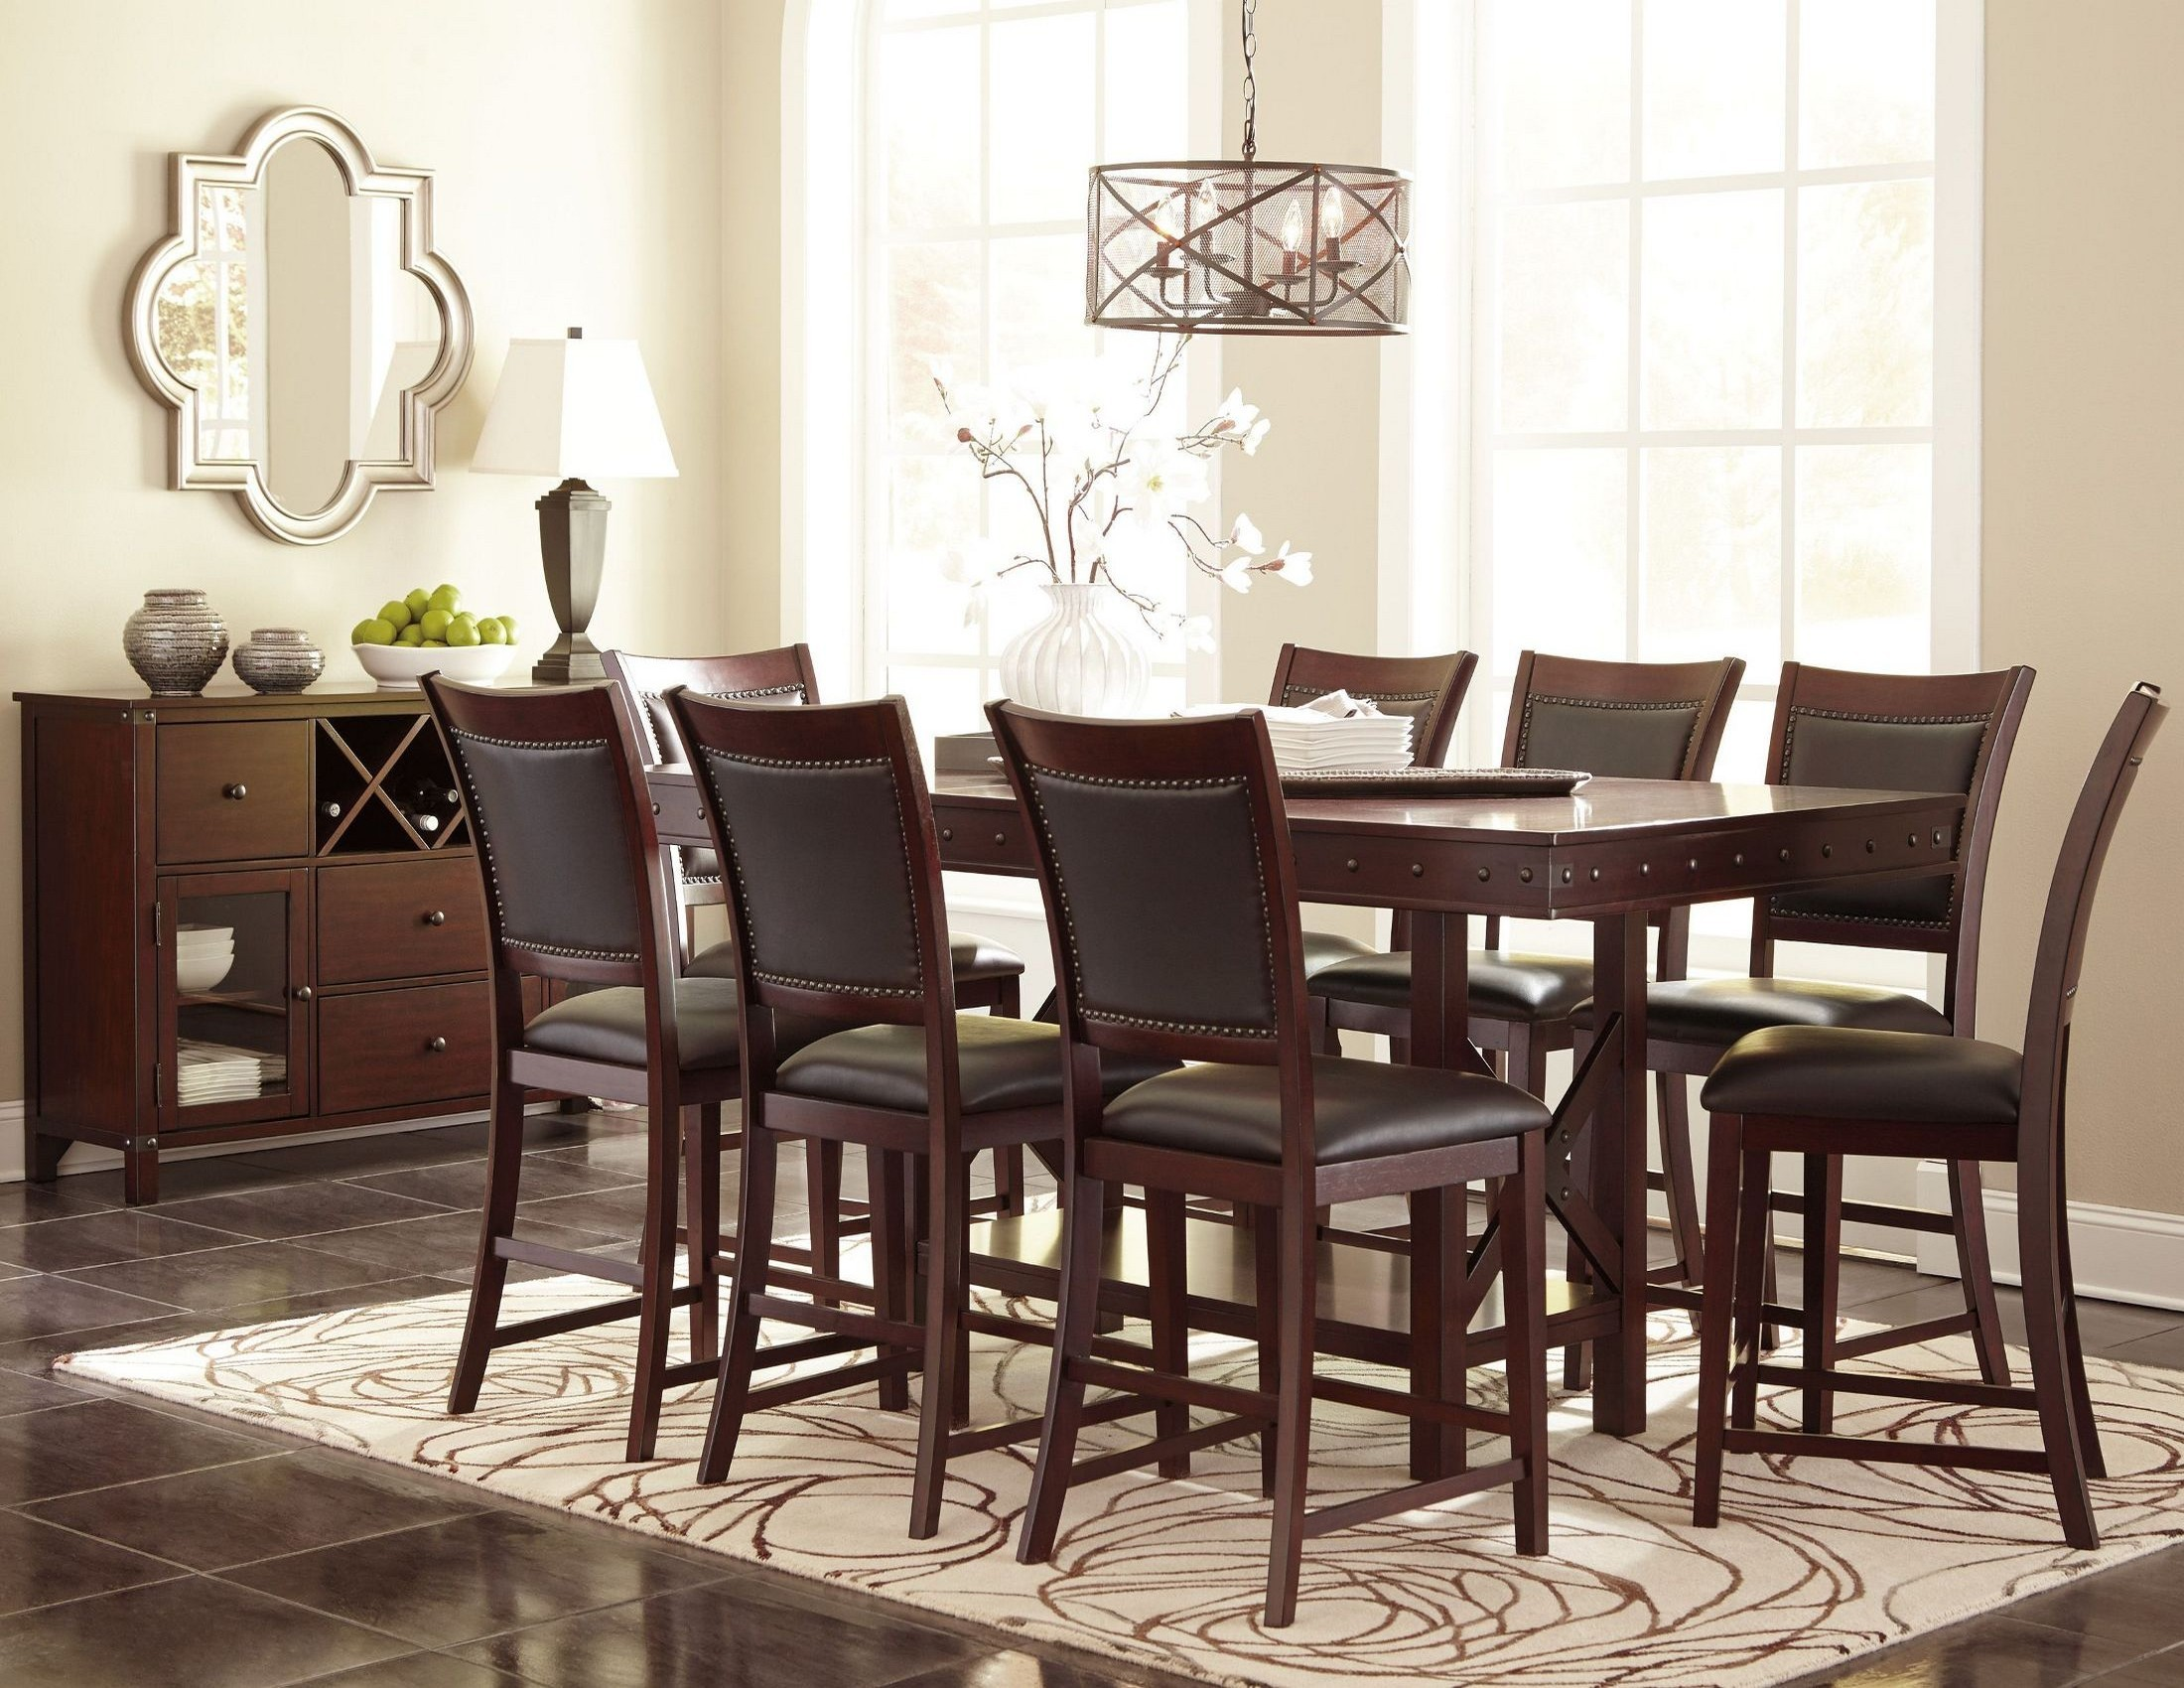 Collenburg Brown Extendable Counter Height Dining Room Set